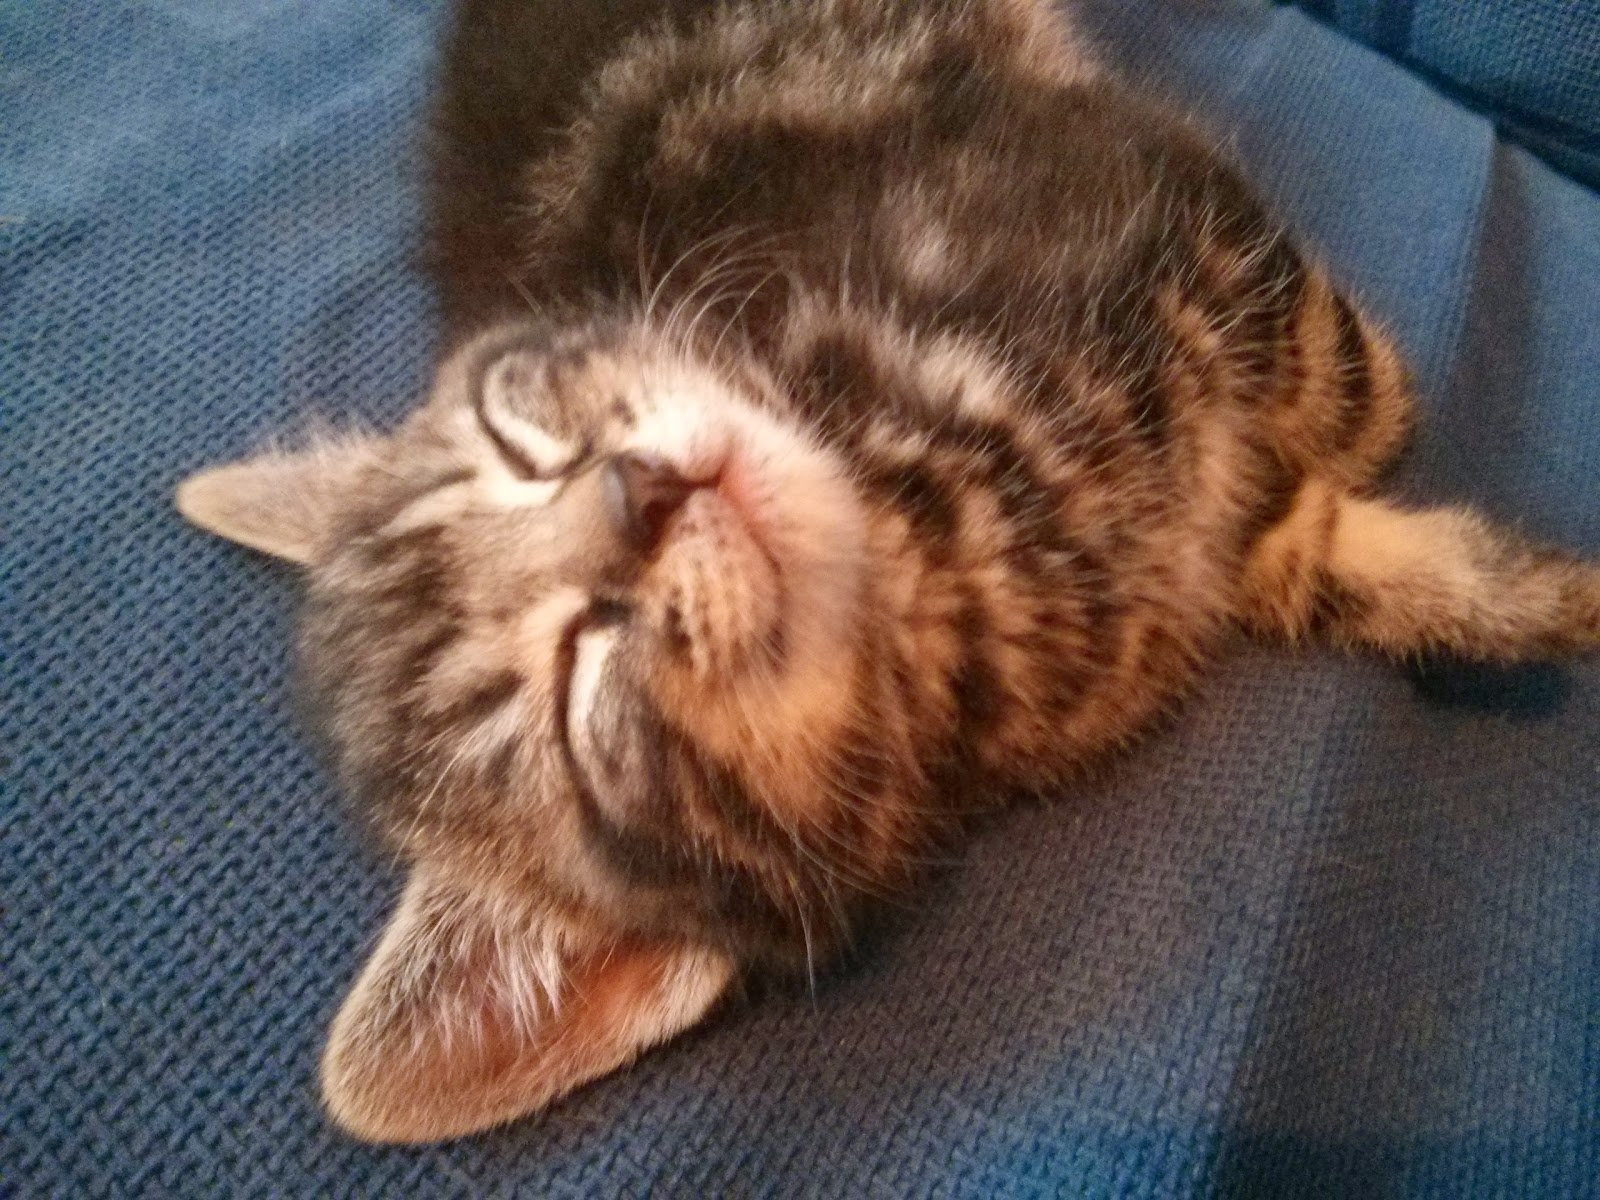 Mario The Smiling Kitten